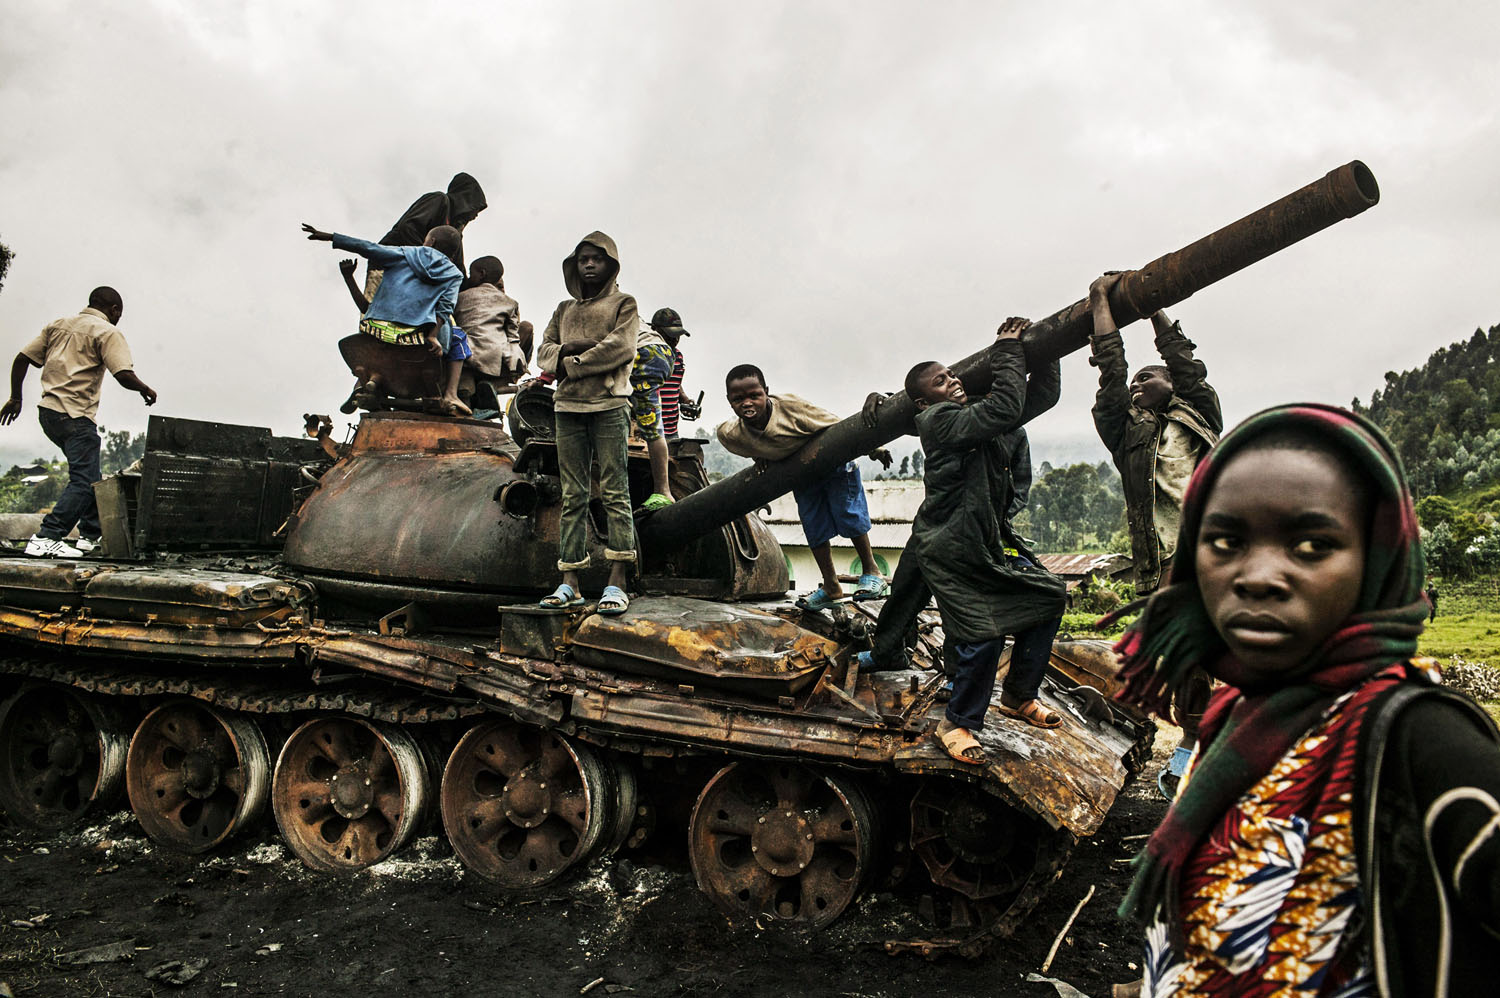 Congolese children play on a destroyed M-23 tank near Kibumba, north of Goma on Tuesday. Kibumba was the site of heavy fighting between the Congolese army and M-23 rebels on Sunday.